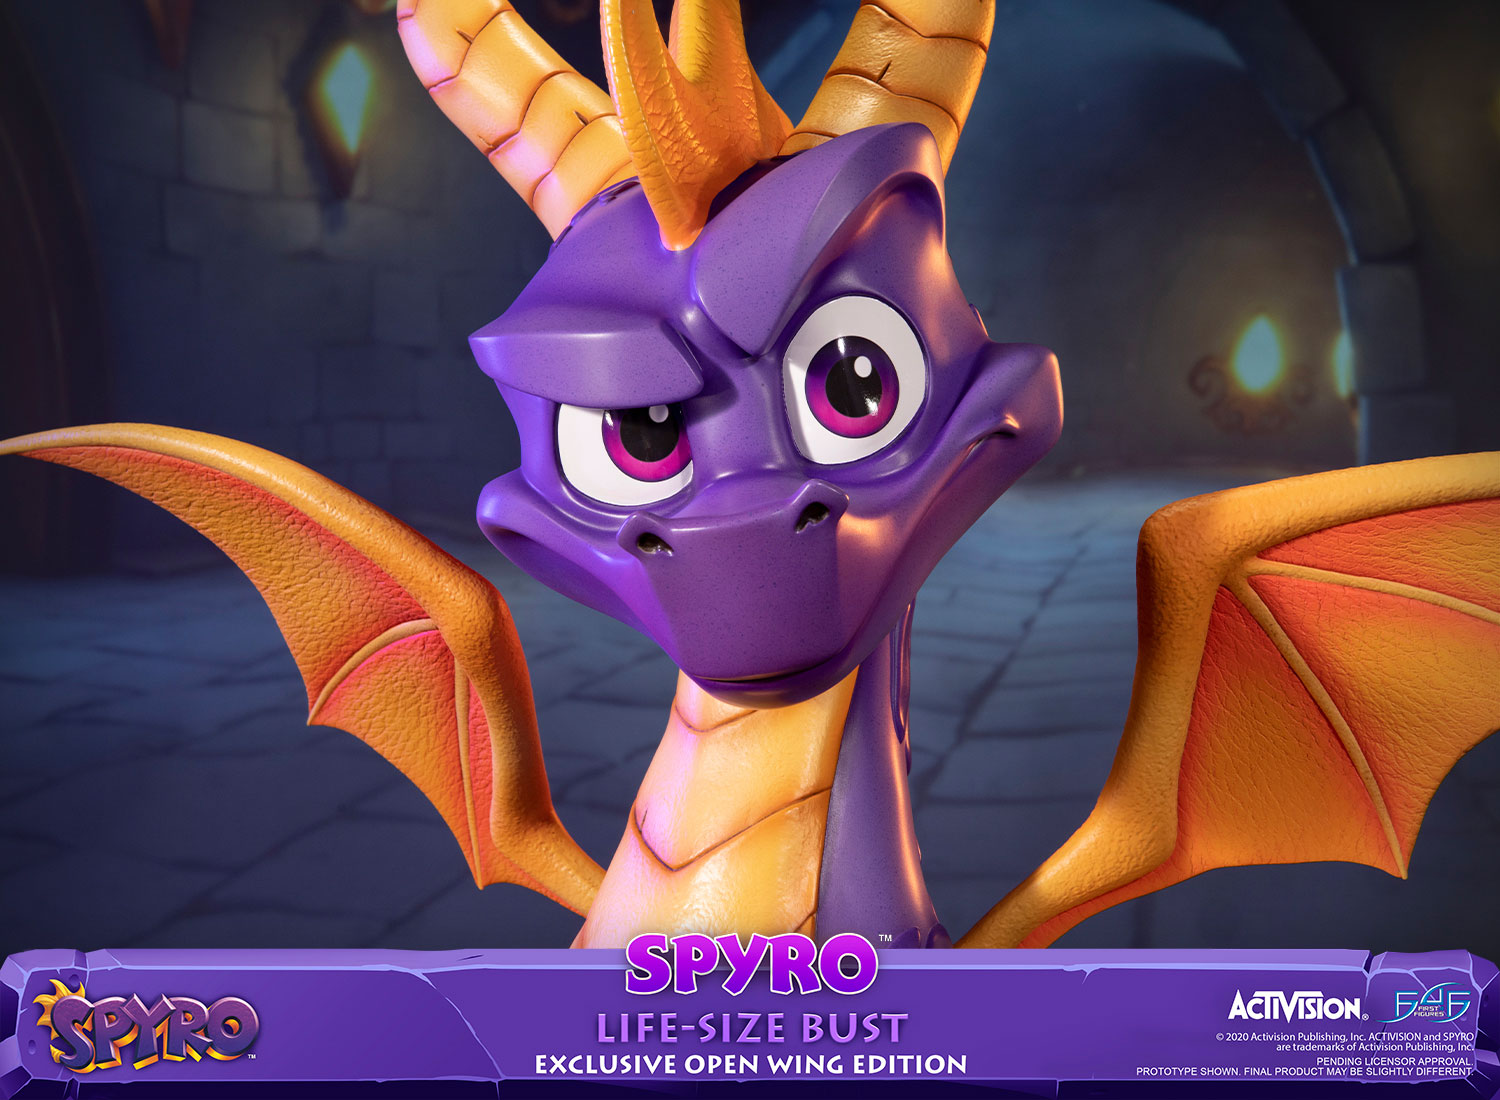 Spyro™ Life-Size Bust (Exclusive Open Wing Edition)